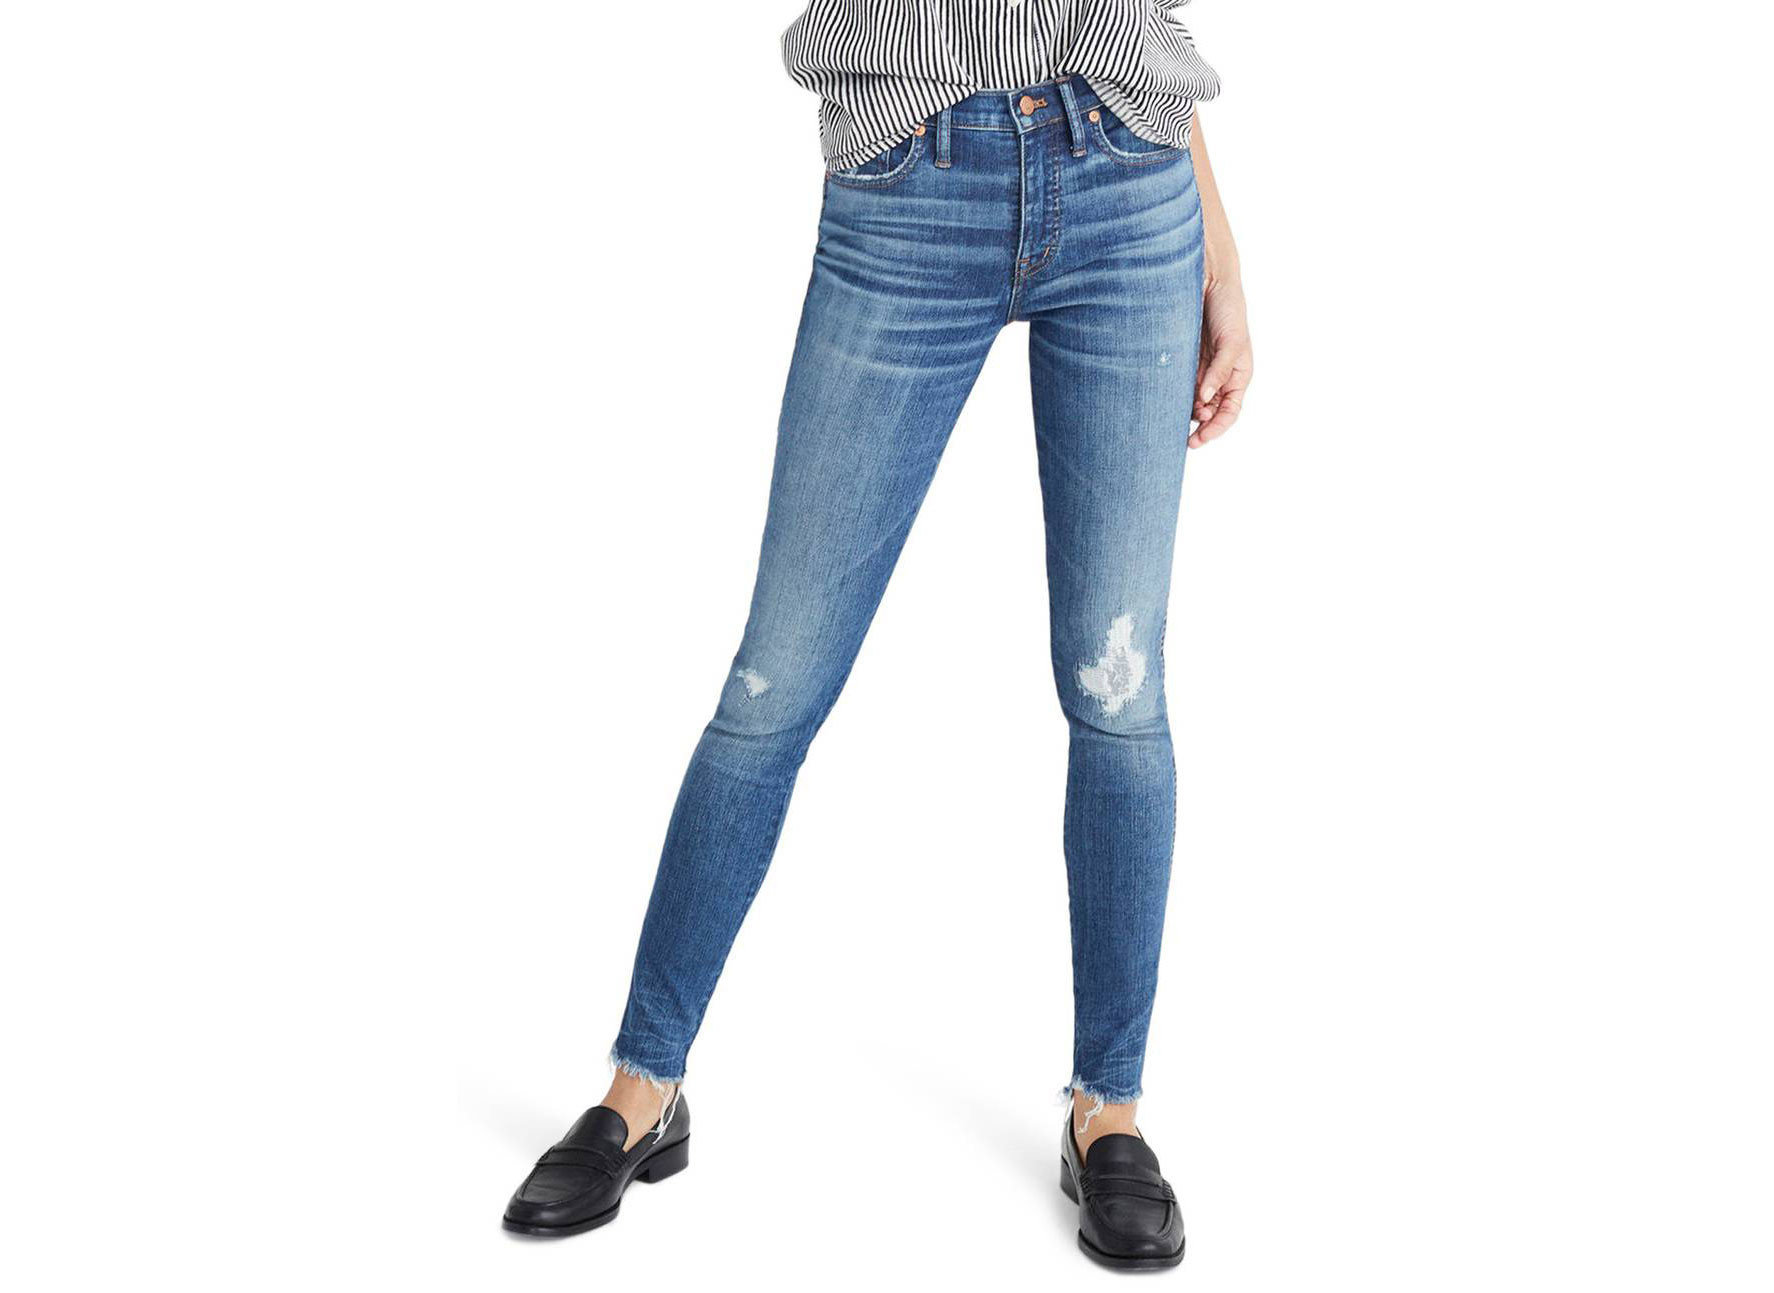 Style + Design Travel Shop person clothing jeans denim trouser posing standing waist wearing joint trousers electric blue leggings abdomen arm